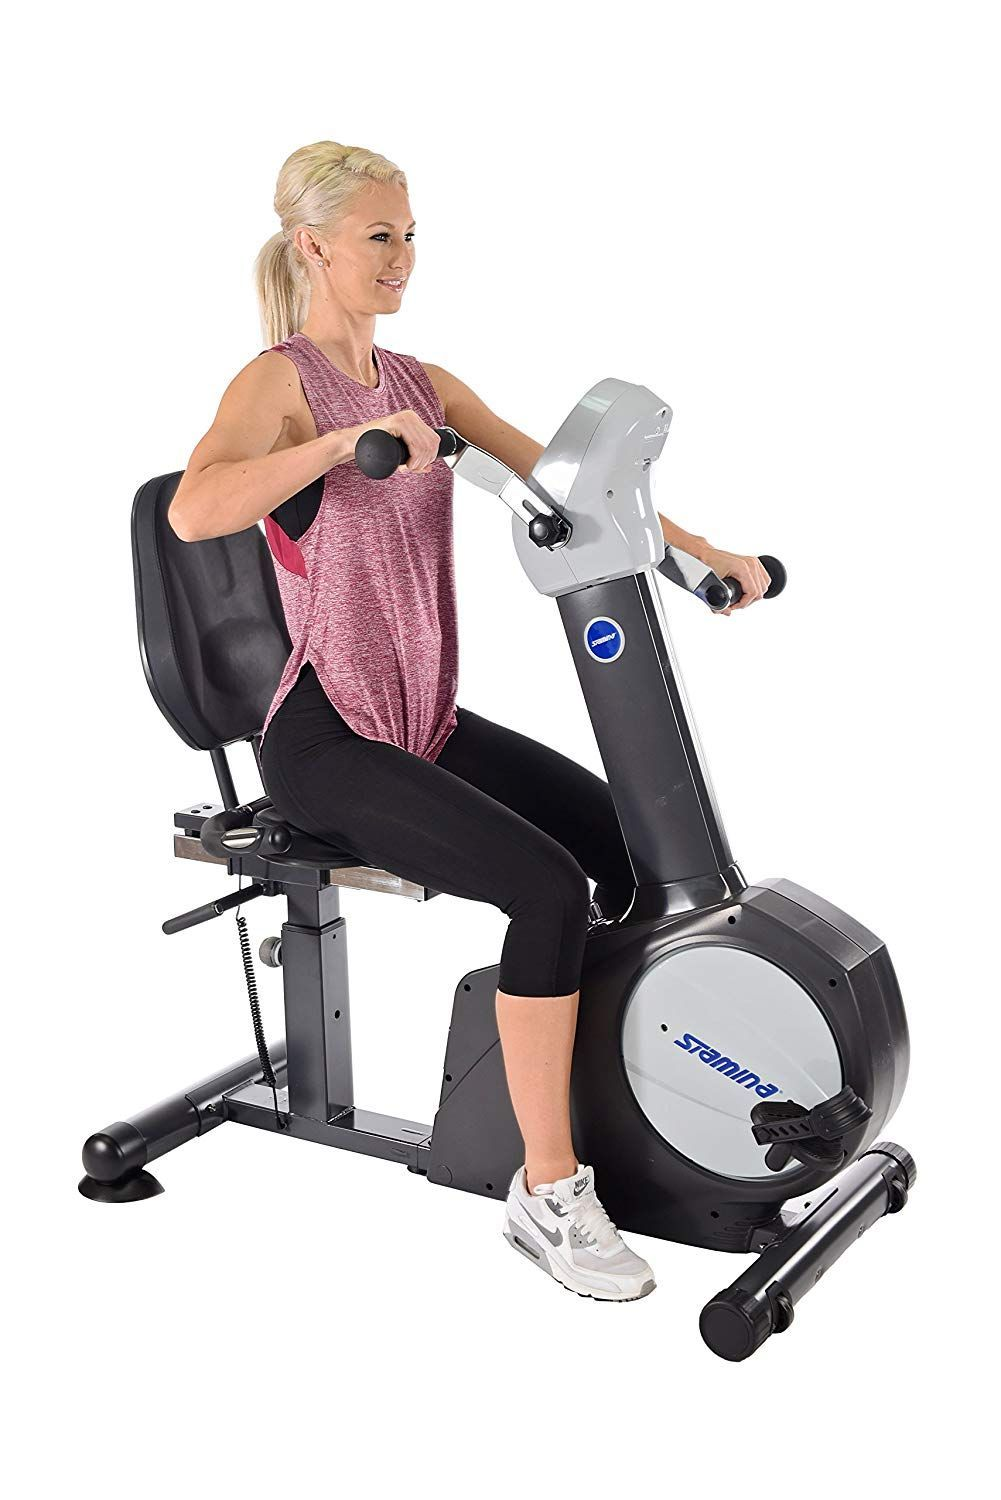 Maxi Climber R The Initial Proprietary Vertical Climber As Seen On Tv Full Body Biking Workout Recumbent Bike Workout Best Exercise Bike